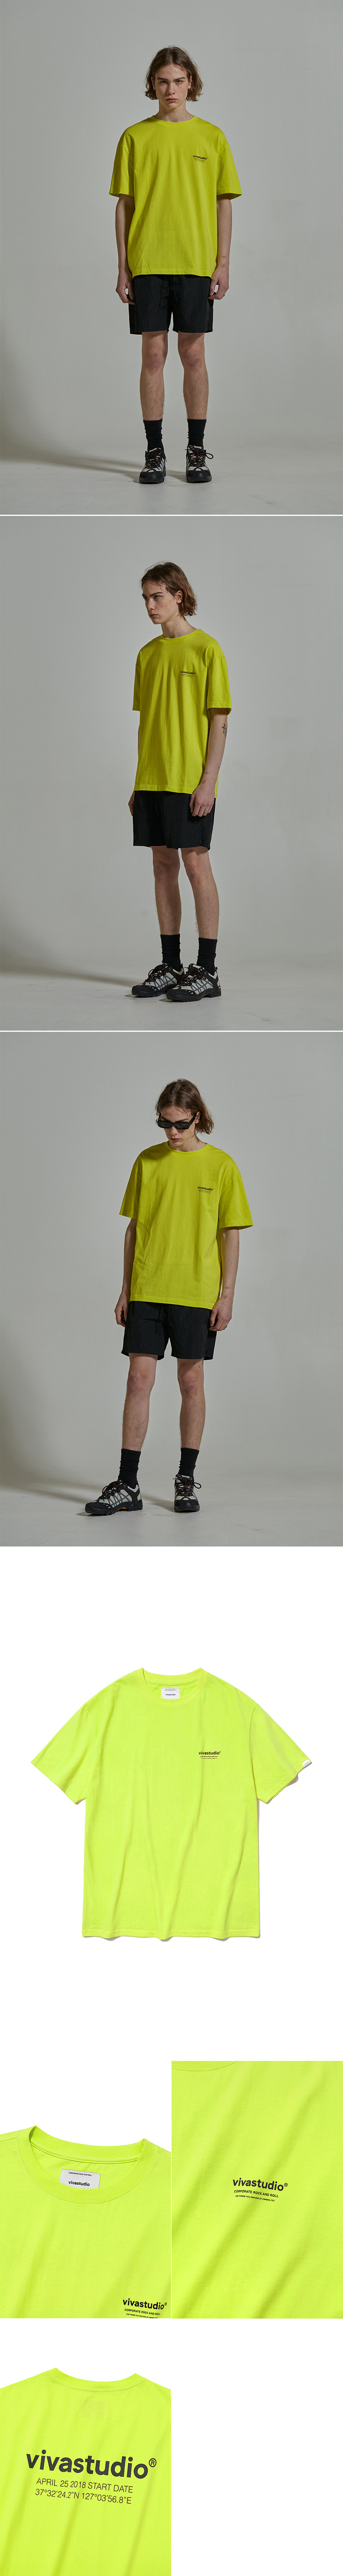 비바스튜디오(VIVASTUDIO) LOCATION LOGO SHORT SLEEVE IS [NEON YELLOW]